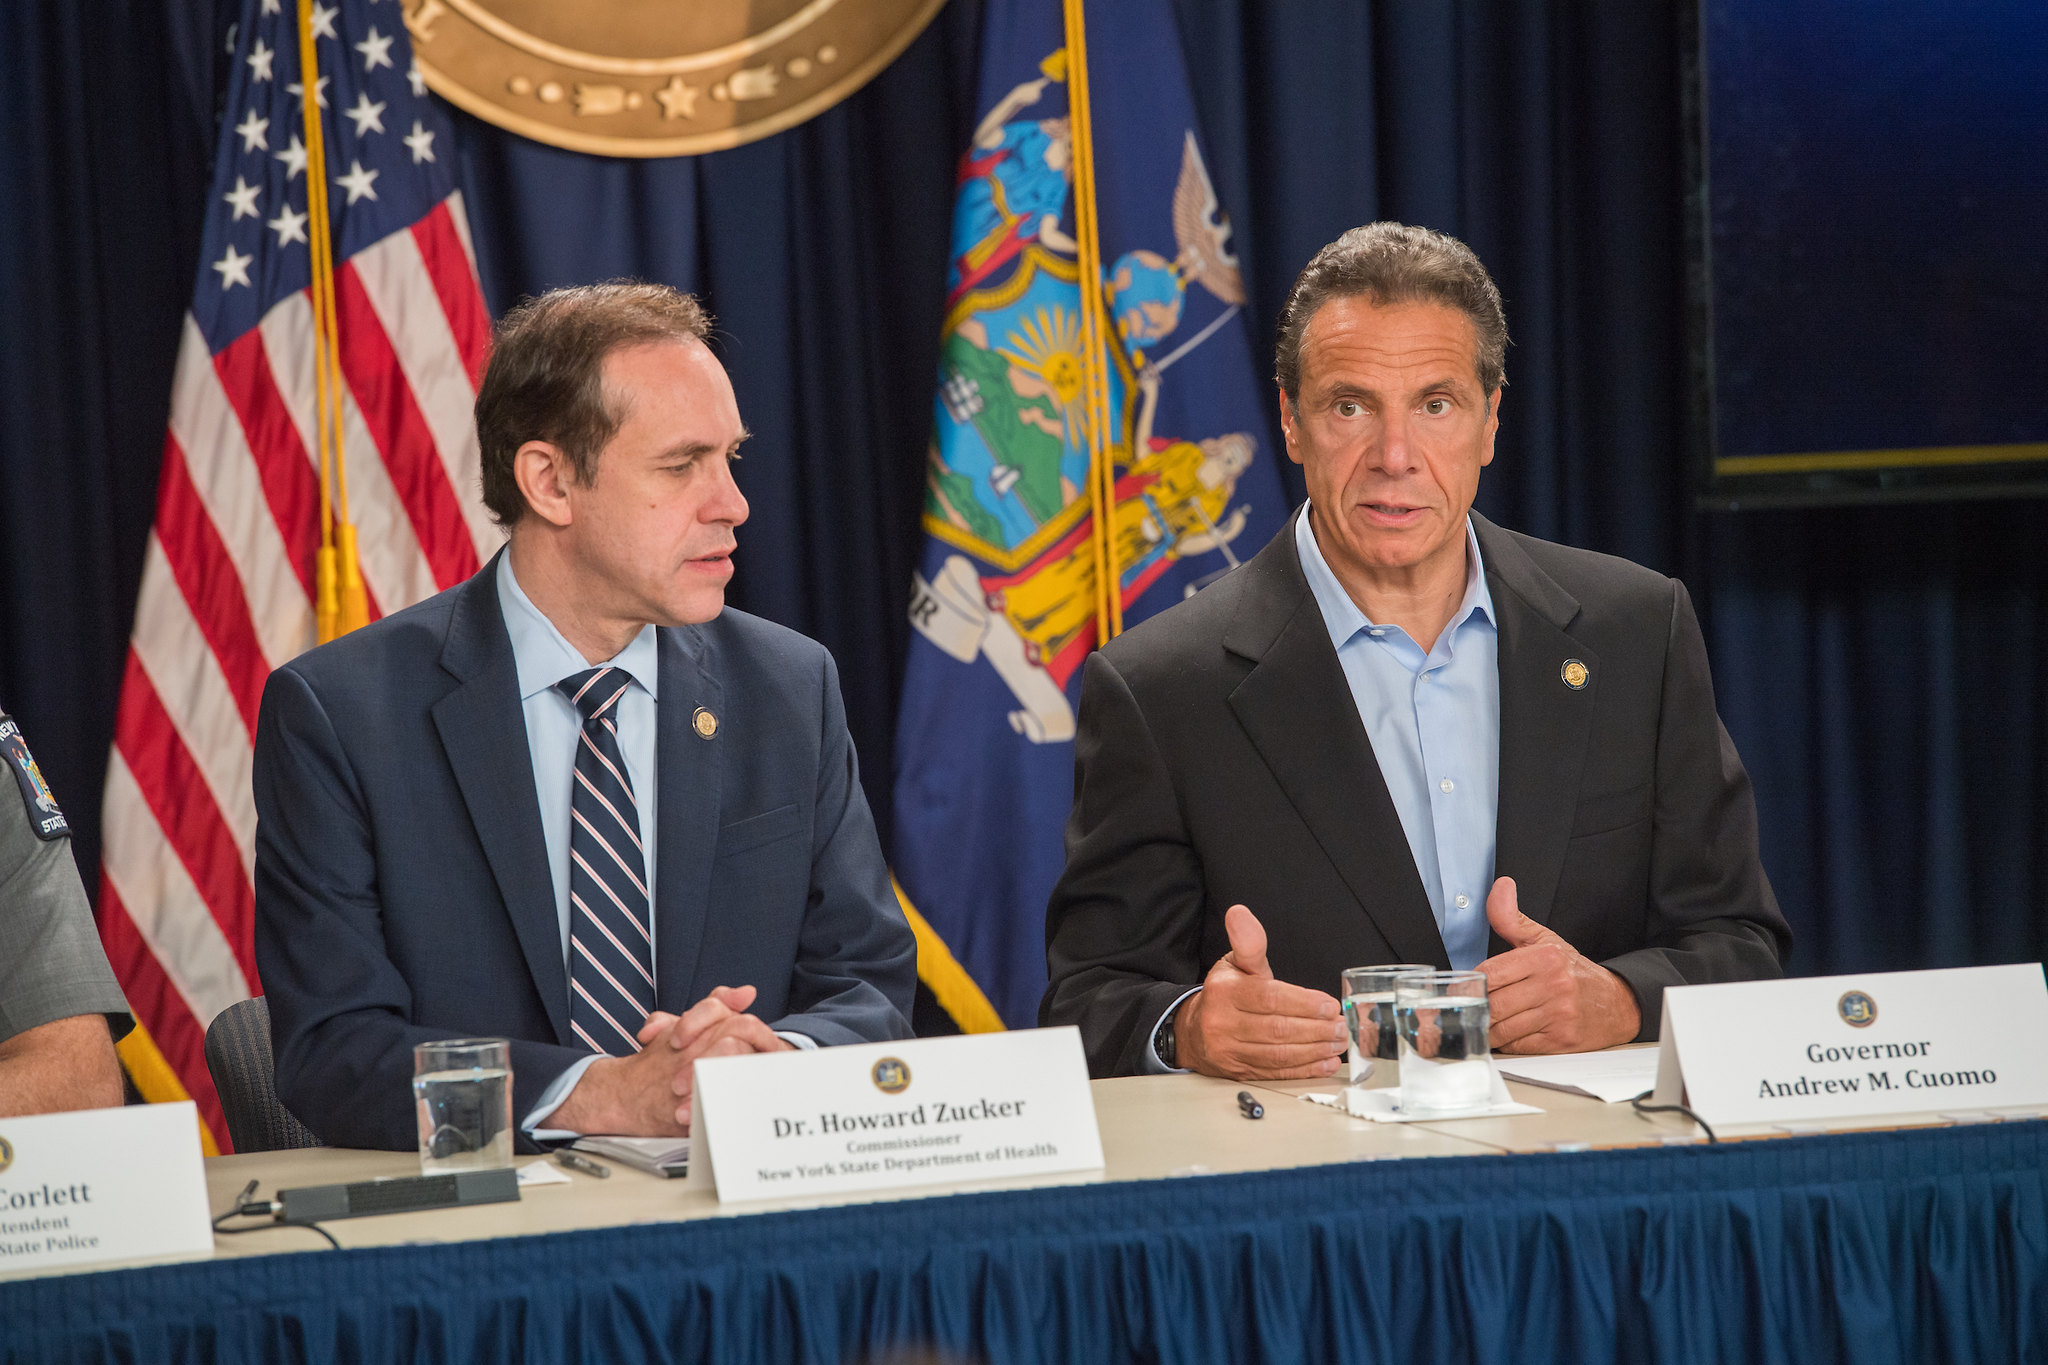 Governor Cuomo Announces Emergency Executive Action to Ban the Sale of Flavored E-Cigarettes